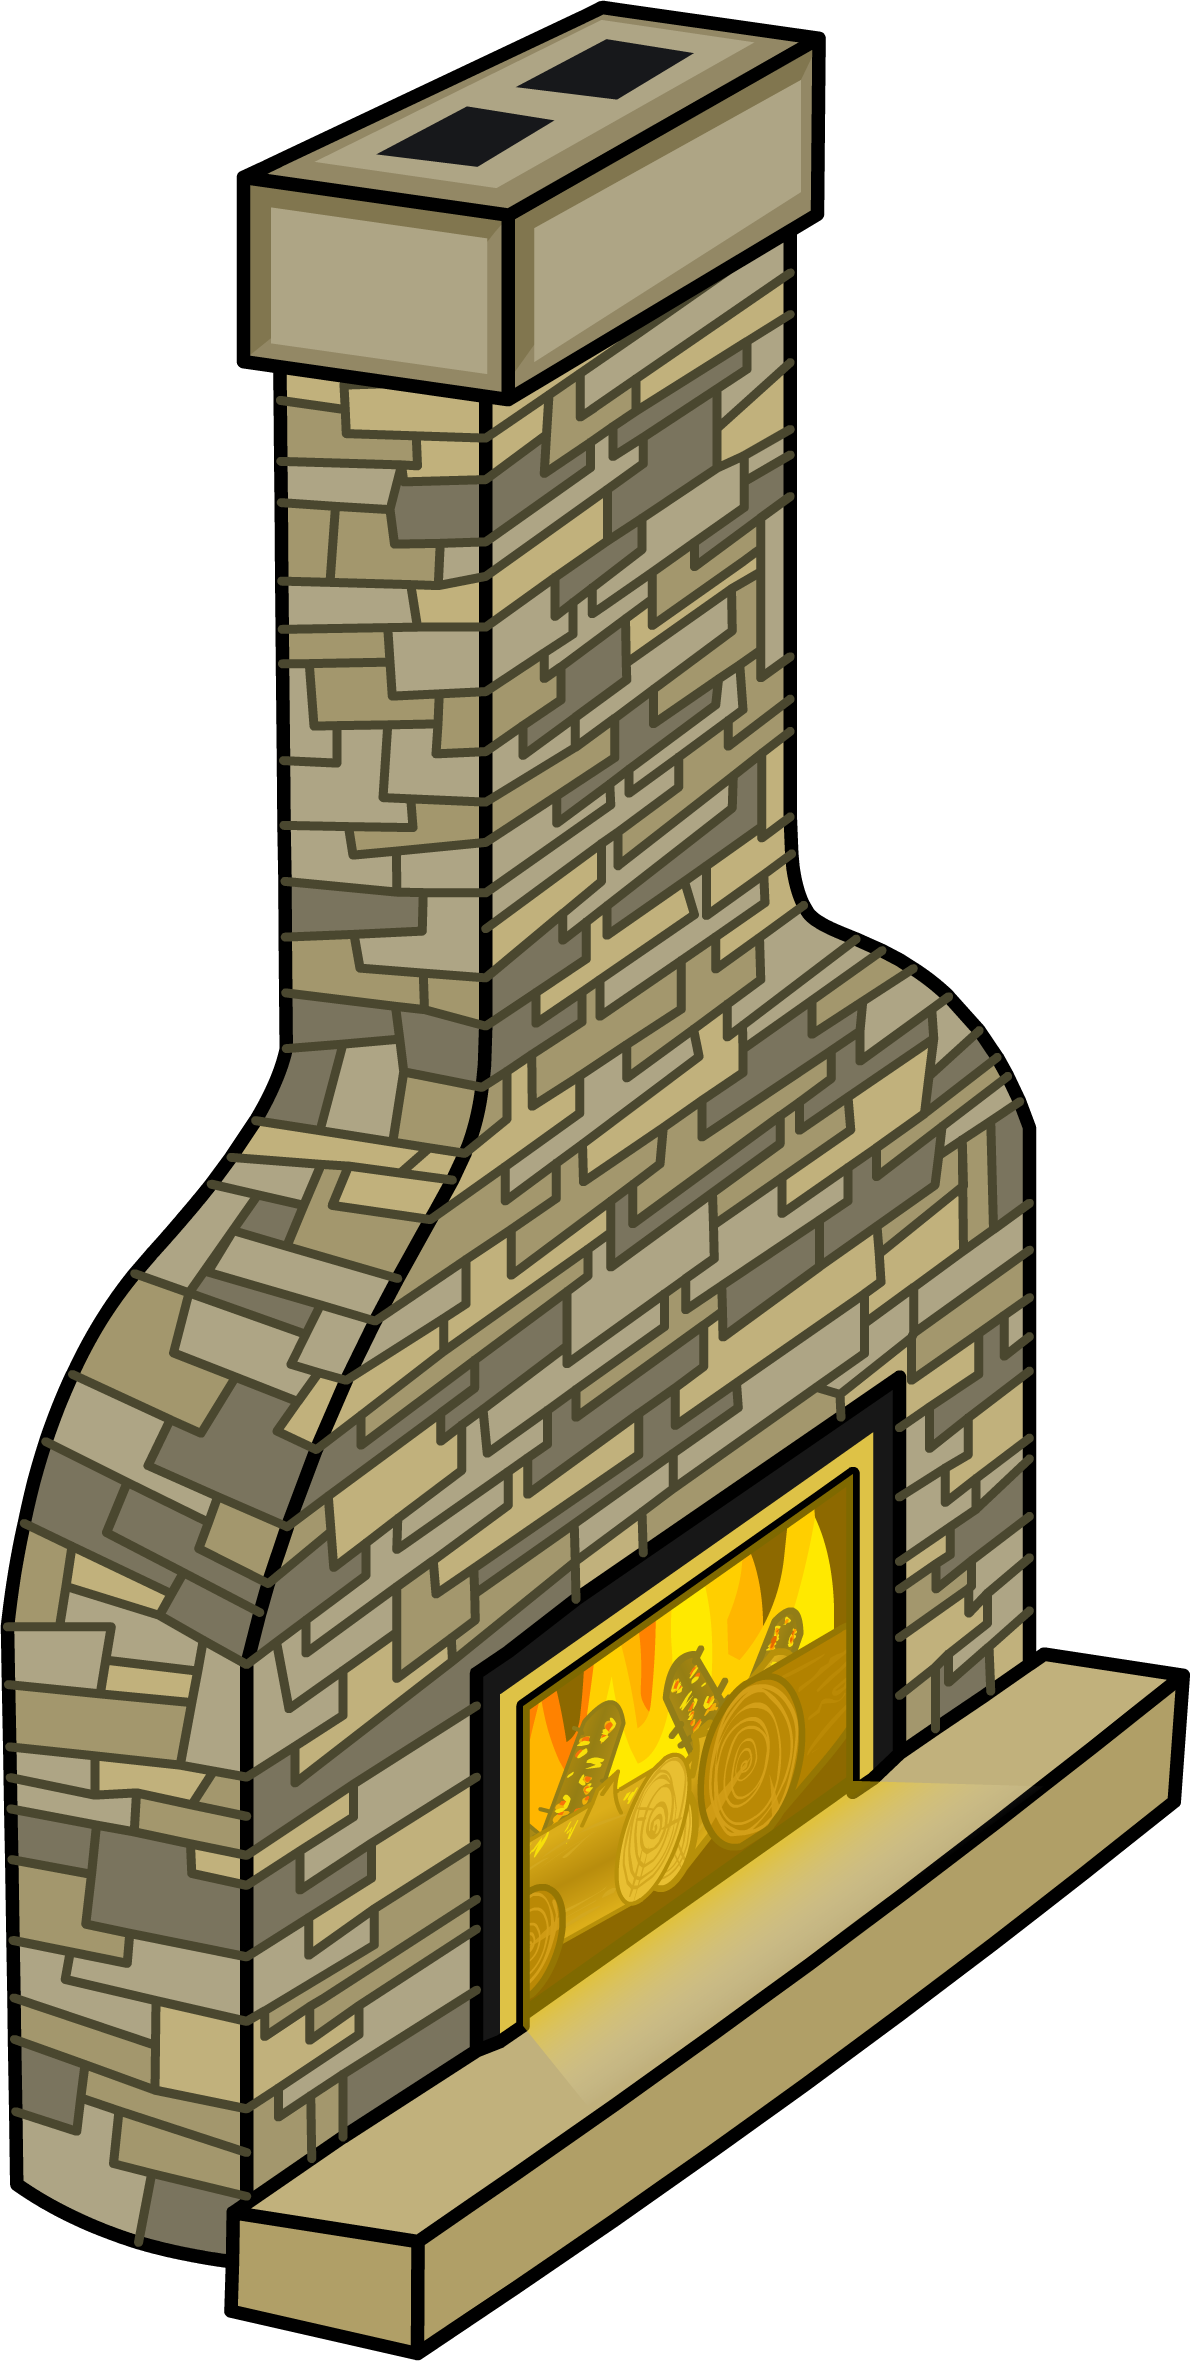 image cozy fireplace sprite 004 png club penguin wiki fandom